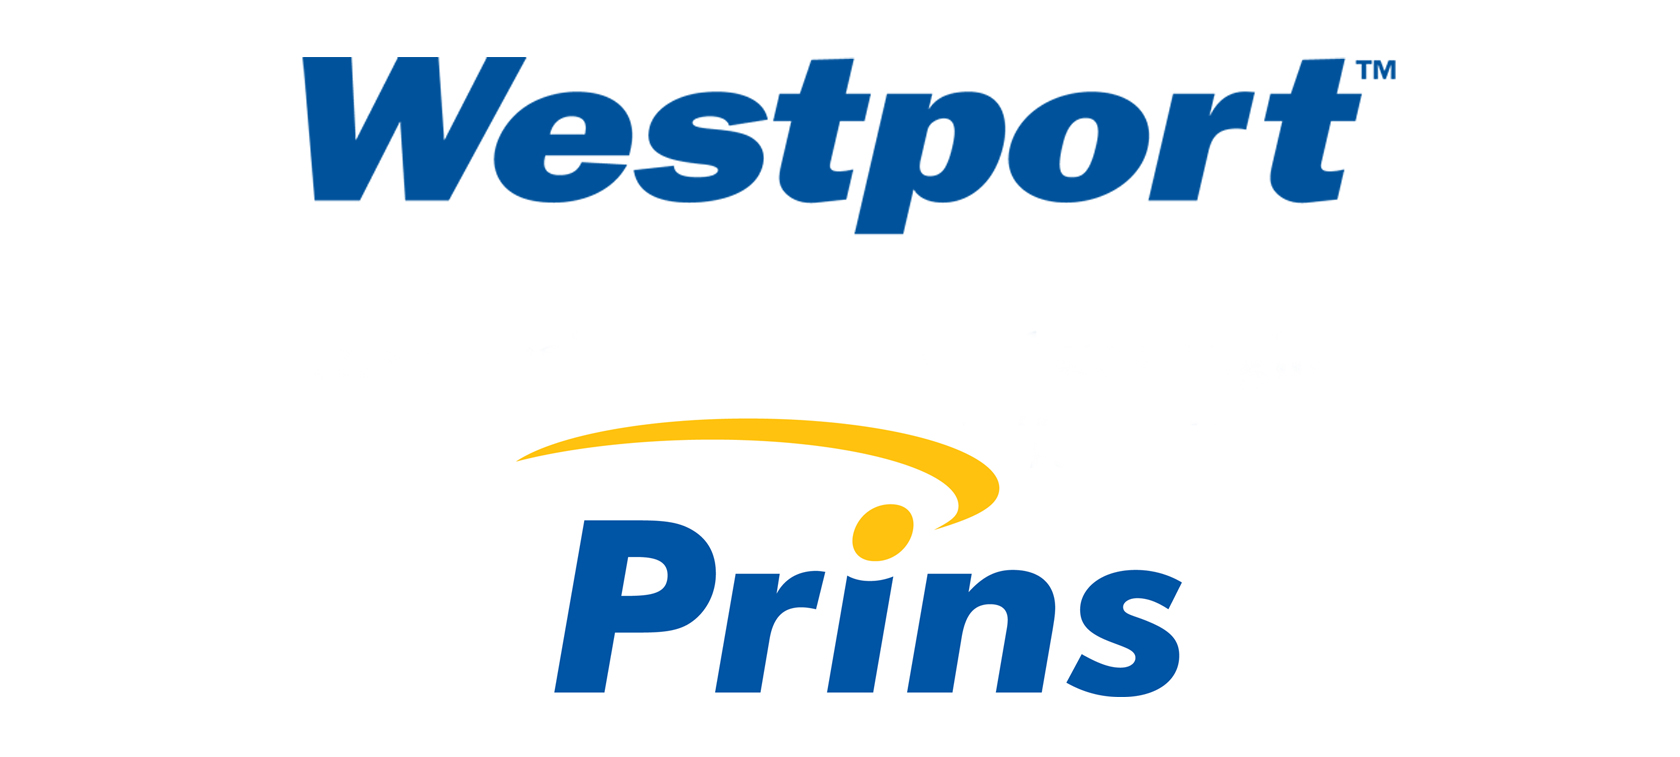 Prins Autogassystemen purchased by Westport